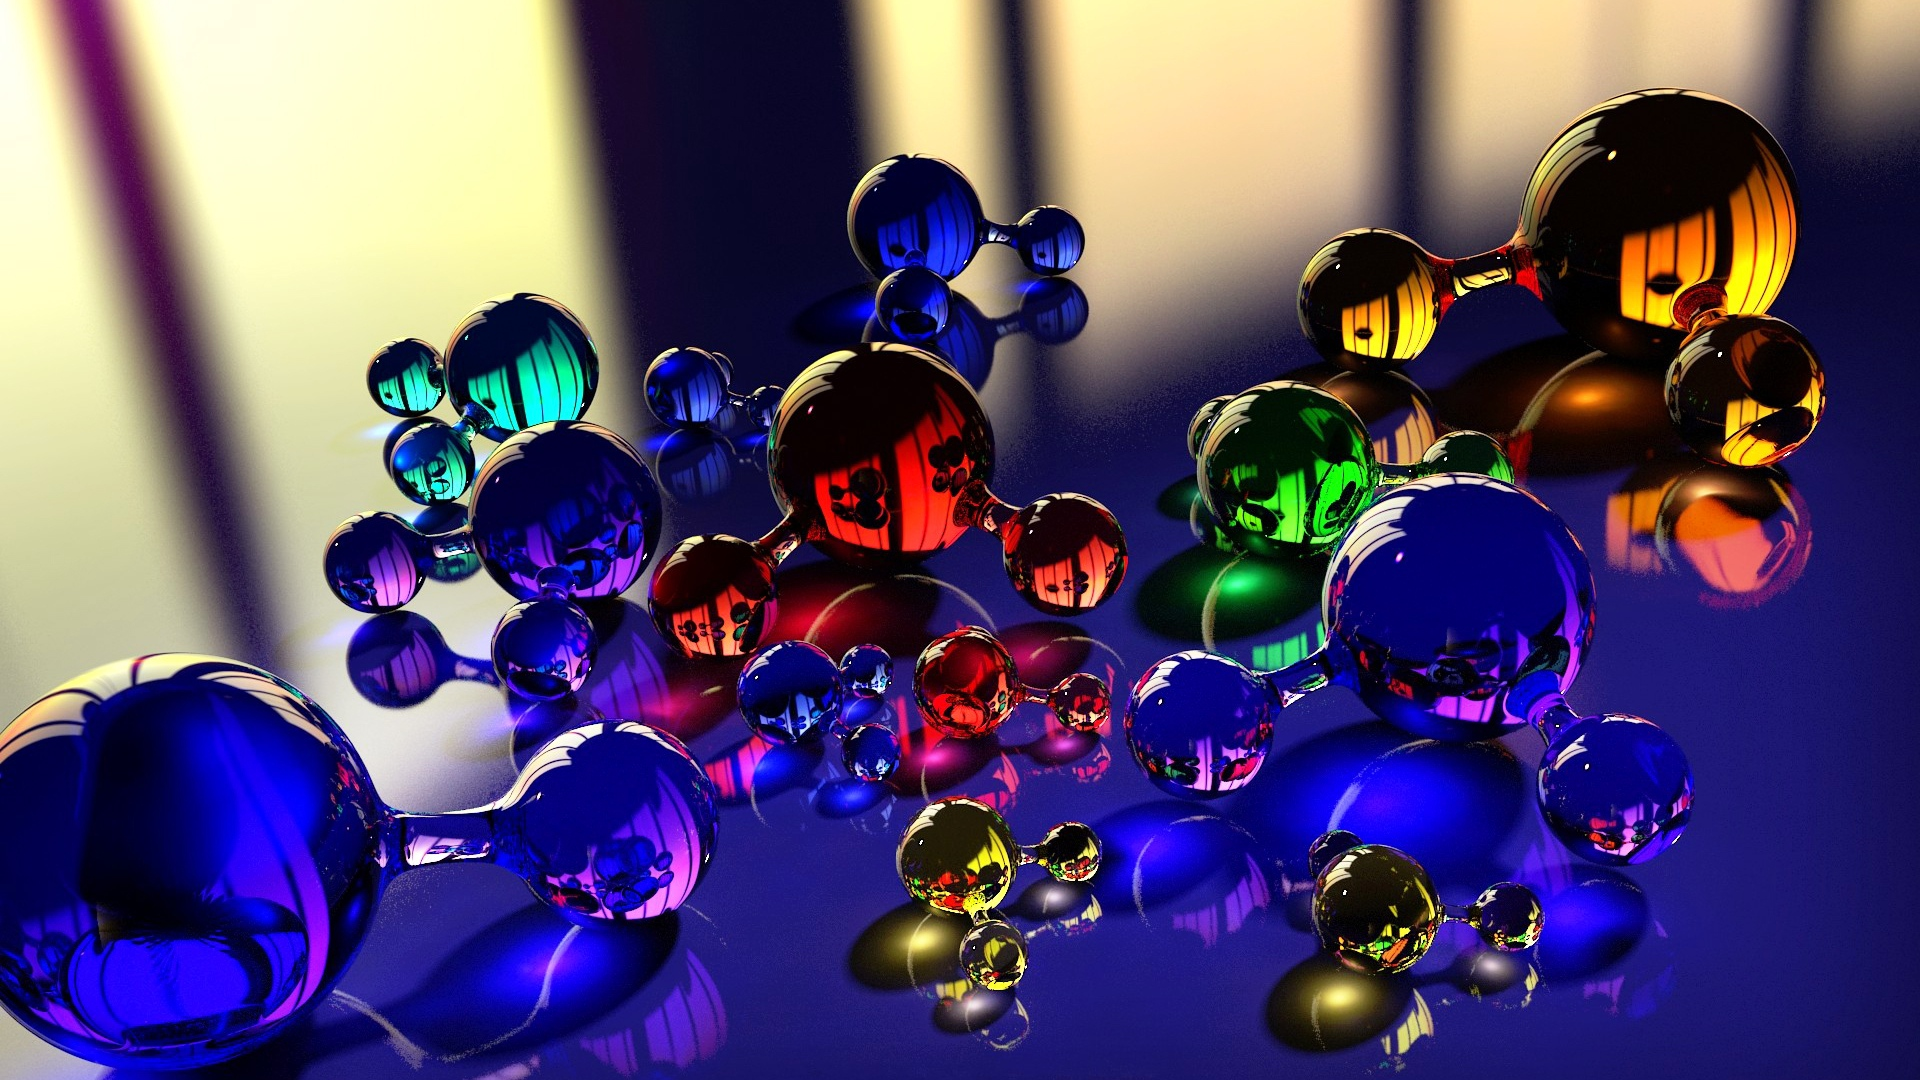 download wallpaper 1920x1080 balls, molecule, massager, glass